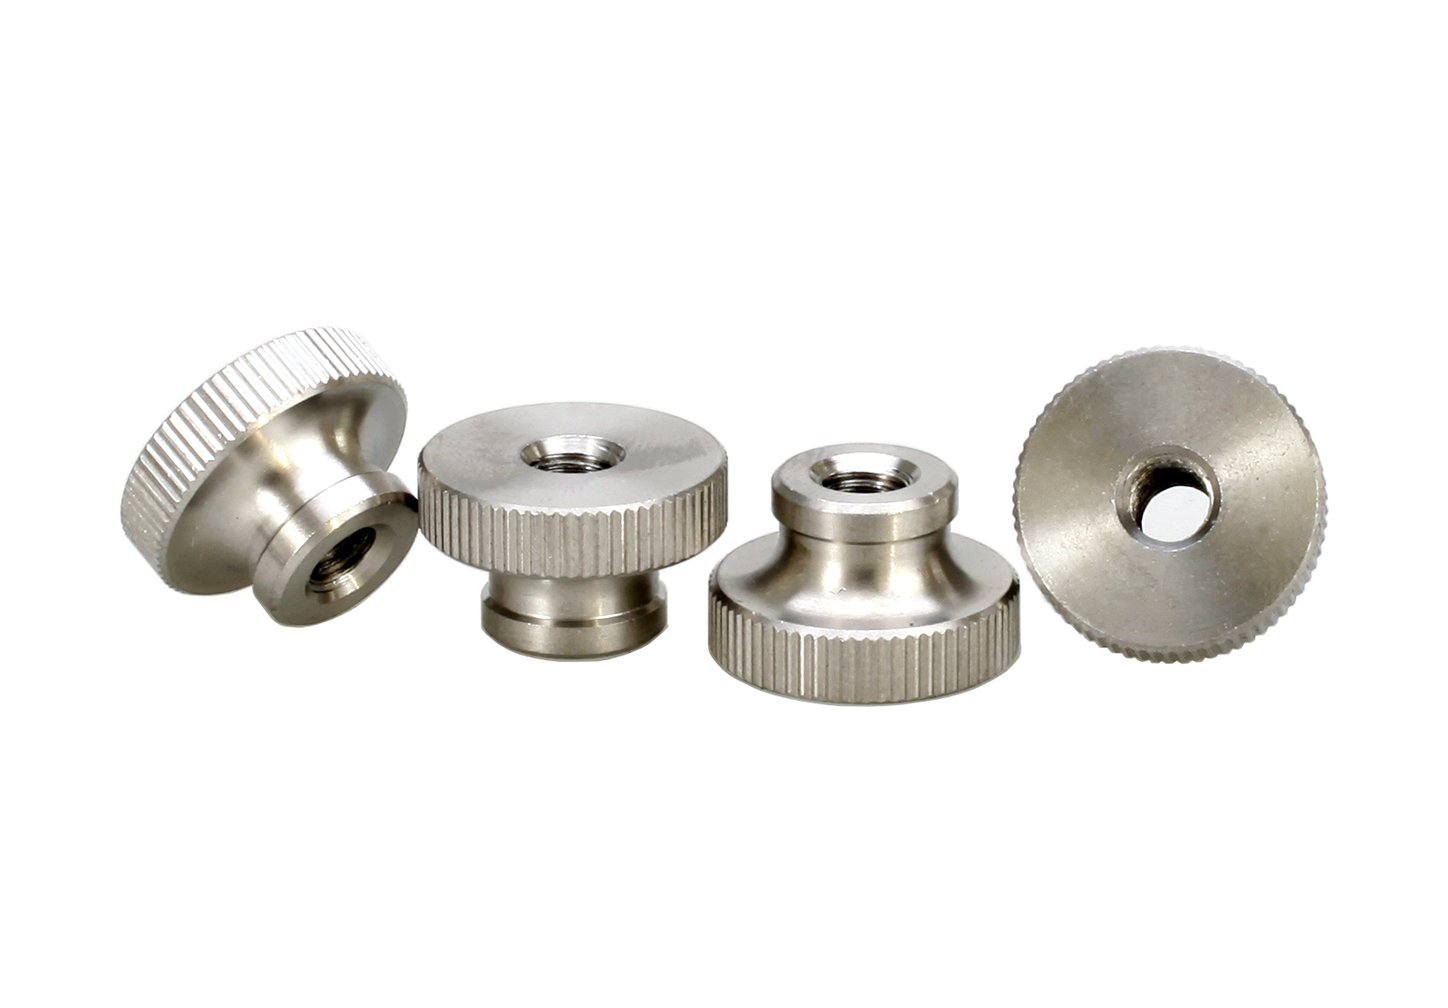 M3 Knurled Thumb Nuts, Knurled Nut with Collar, Round Thumb Nut, Stainless Steel, Pack 8 pcs HZSTONE